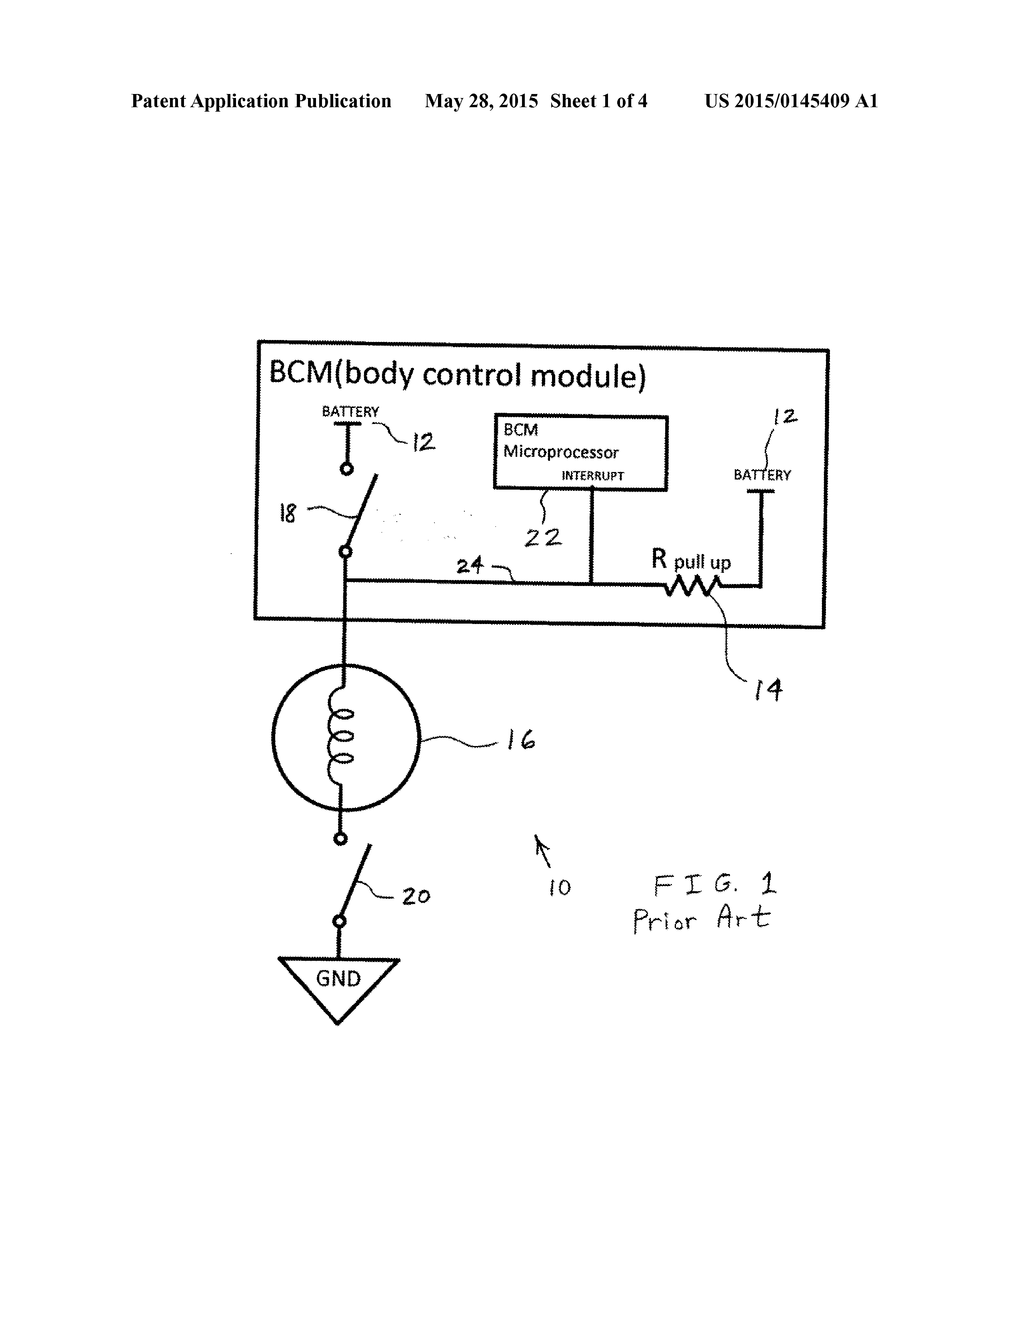 hight resolution of automotive led bleed resistor circuit and body control module interrupt wakeup circuit diagram schematic and image 02